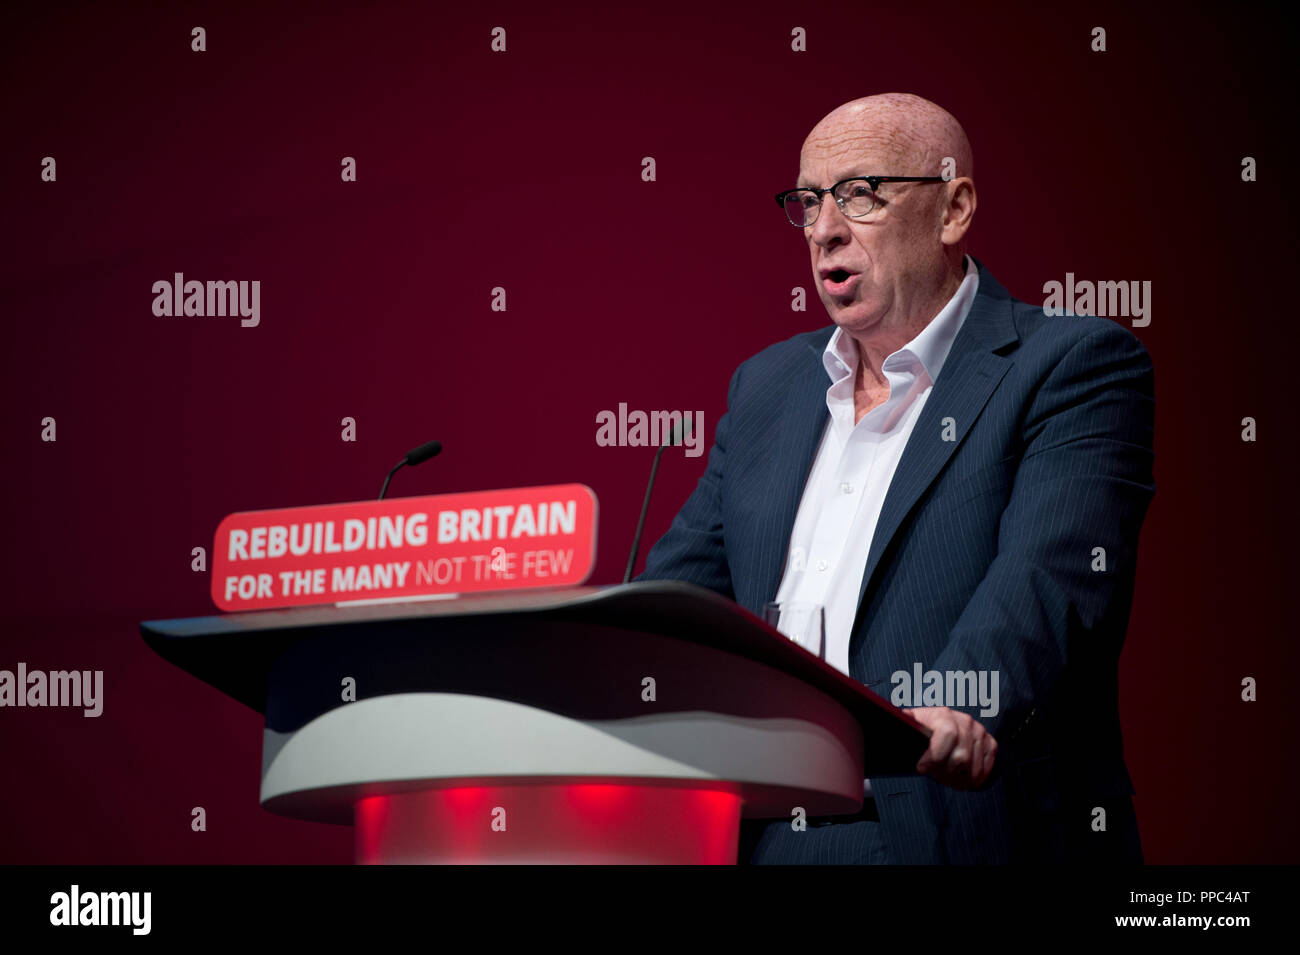 Liverpool, UK. 25th September 2018. Jim Kennedy of the Labour National Executive Committee (NEC) speaks at the Labour Party Conference in Liverpool. © Russell Hart/Alamy Live News. - Stock Image